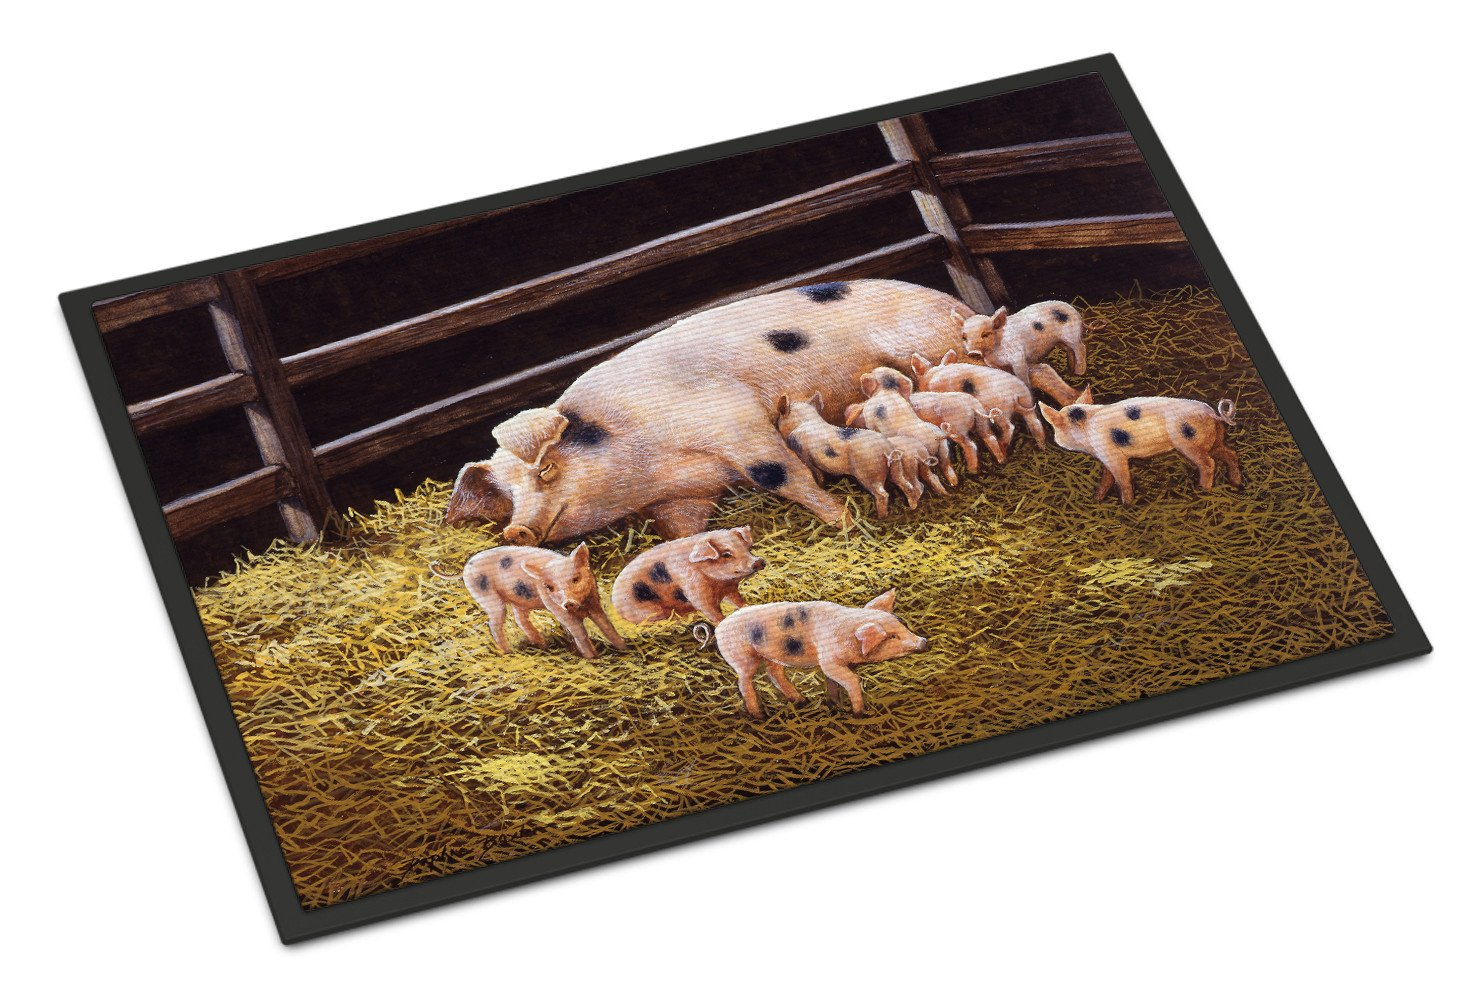 Pigs Piglets at Dinner Time Indoor or Outdoor Mat 18x27 BDBA0296MAT - the-store.com